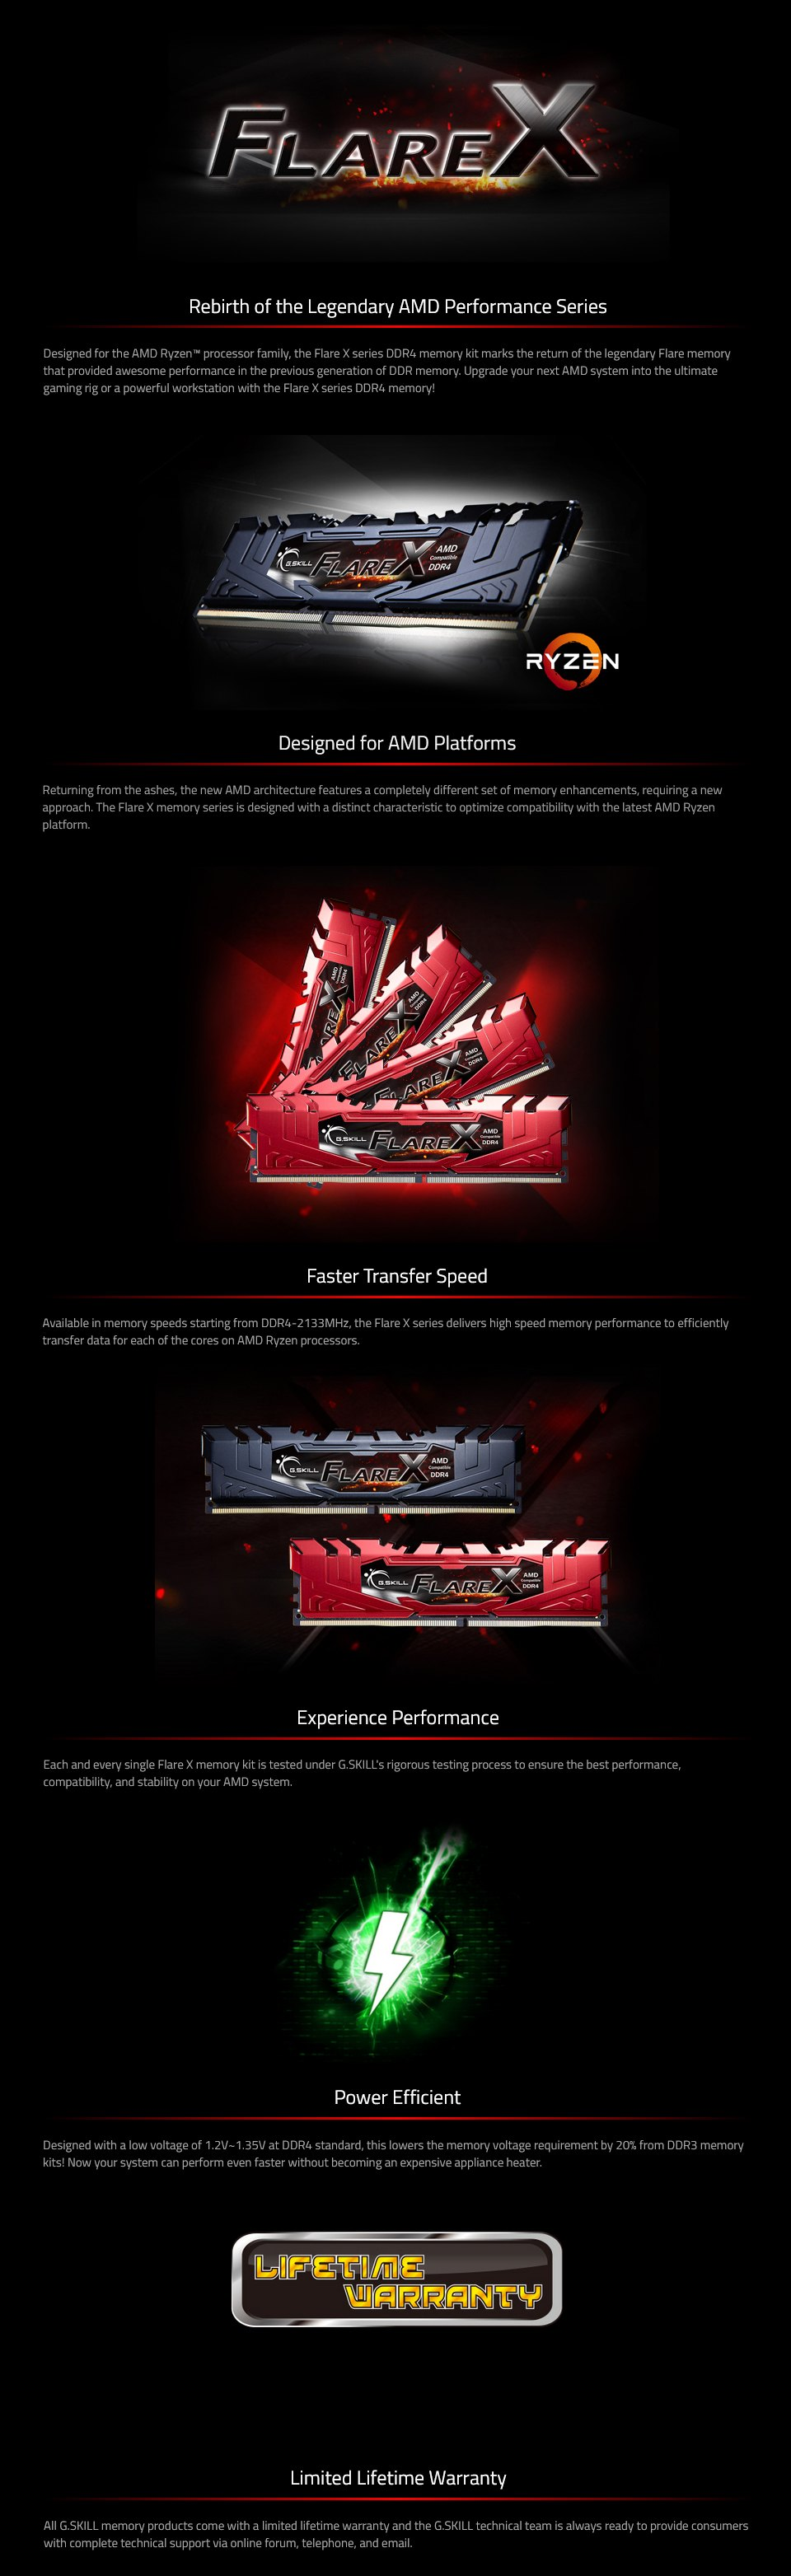 G.Skill Flare X 32GB (4x8GB) 3200MHz CL14 DDR4 features